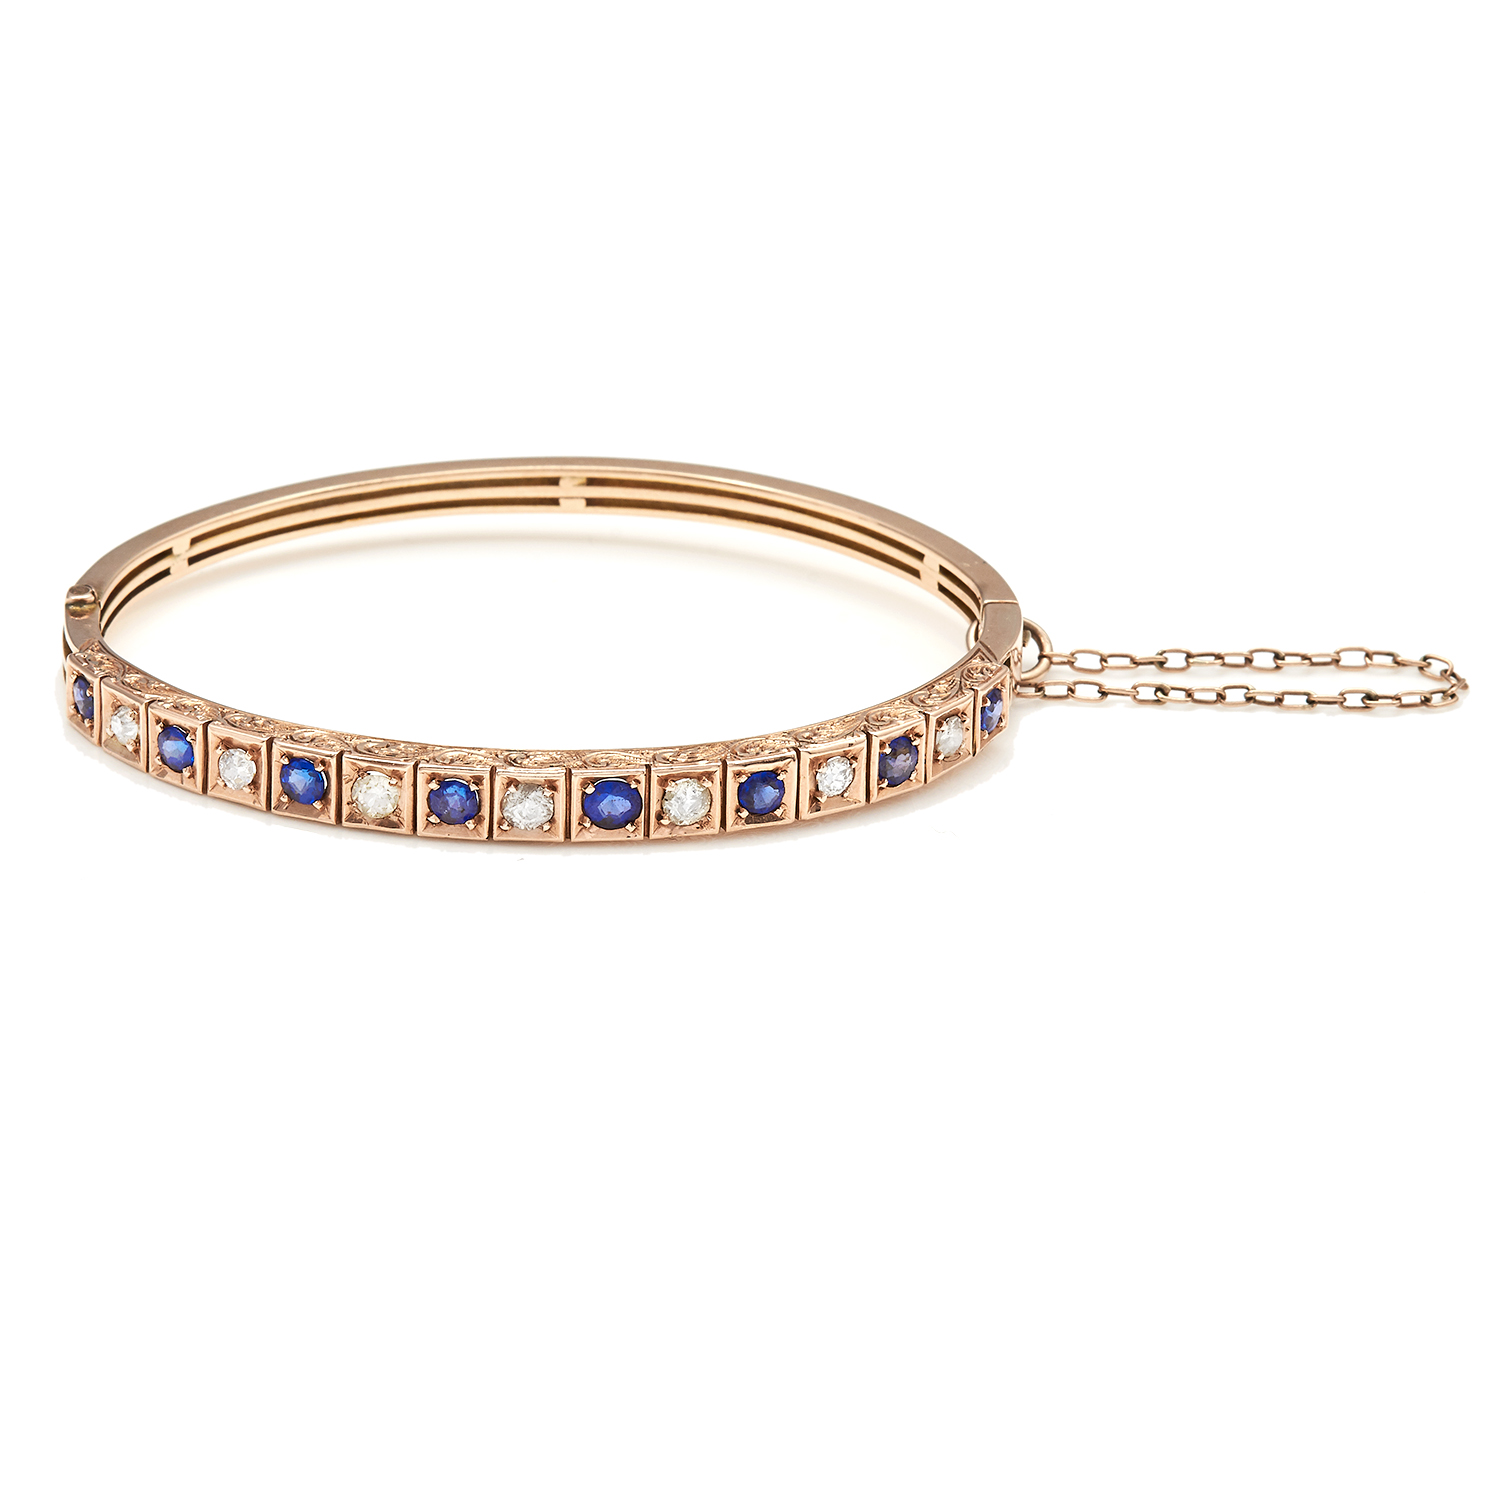 Los 37 - AN ANTIQUE SAPPHIRE AND DIAMOND BANGLE in 15ct yellow gold, a half hoop decorated with alternating